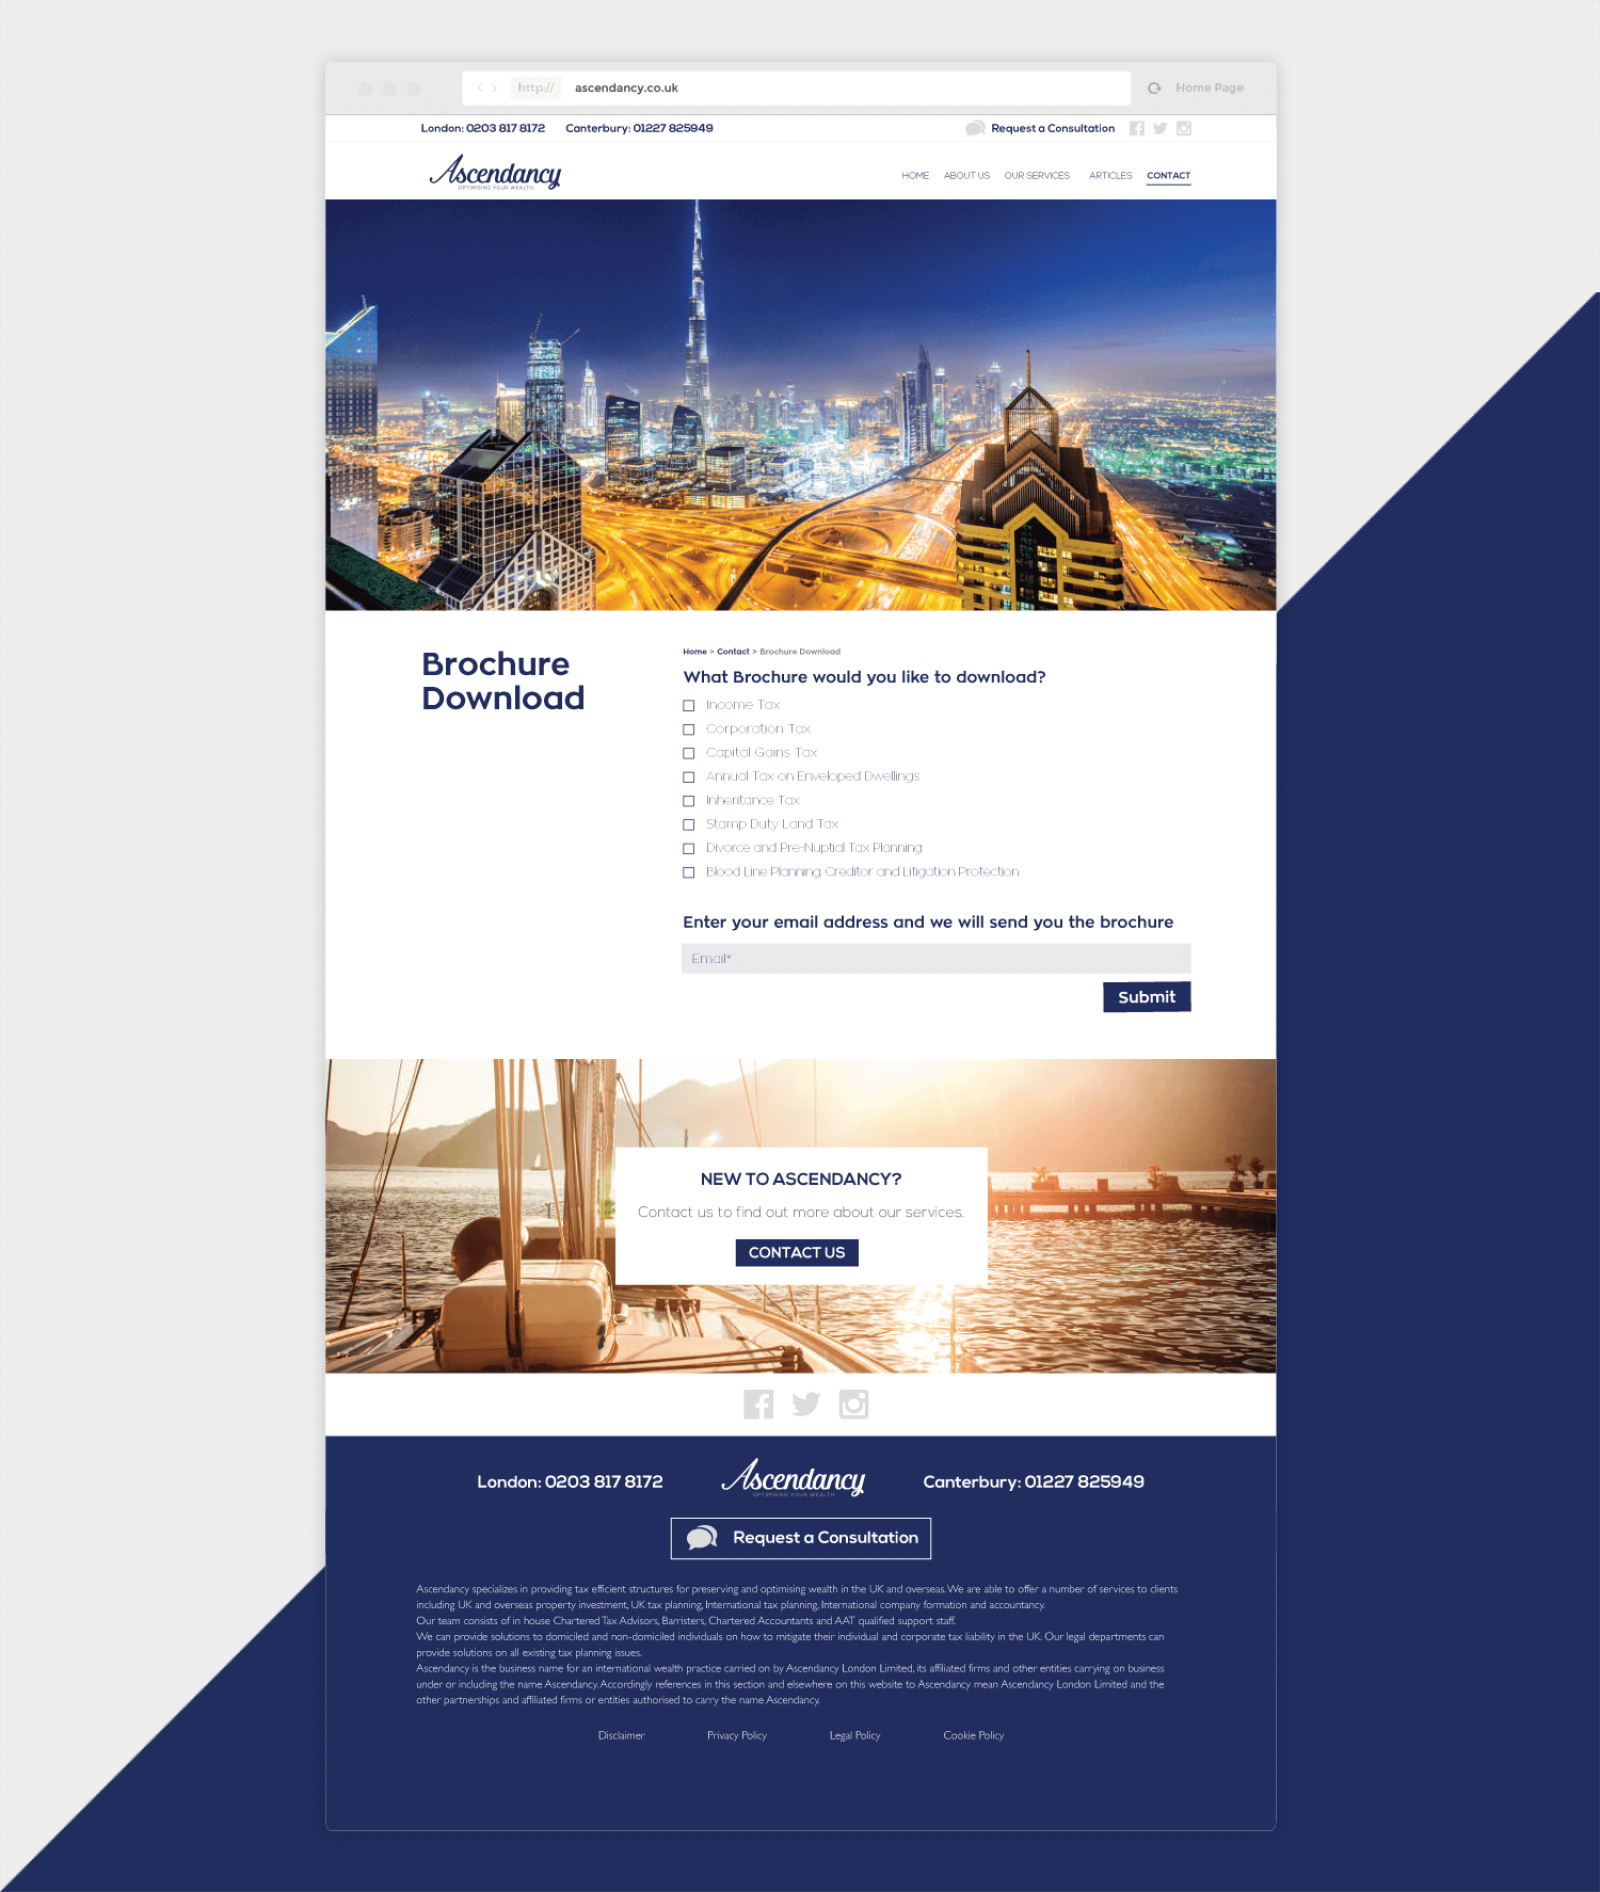 Ascendancy-website-4-design-agency-graphic-design-canterbury.png